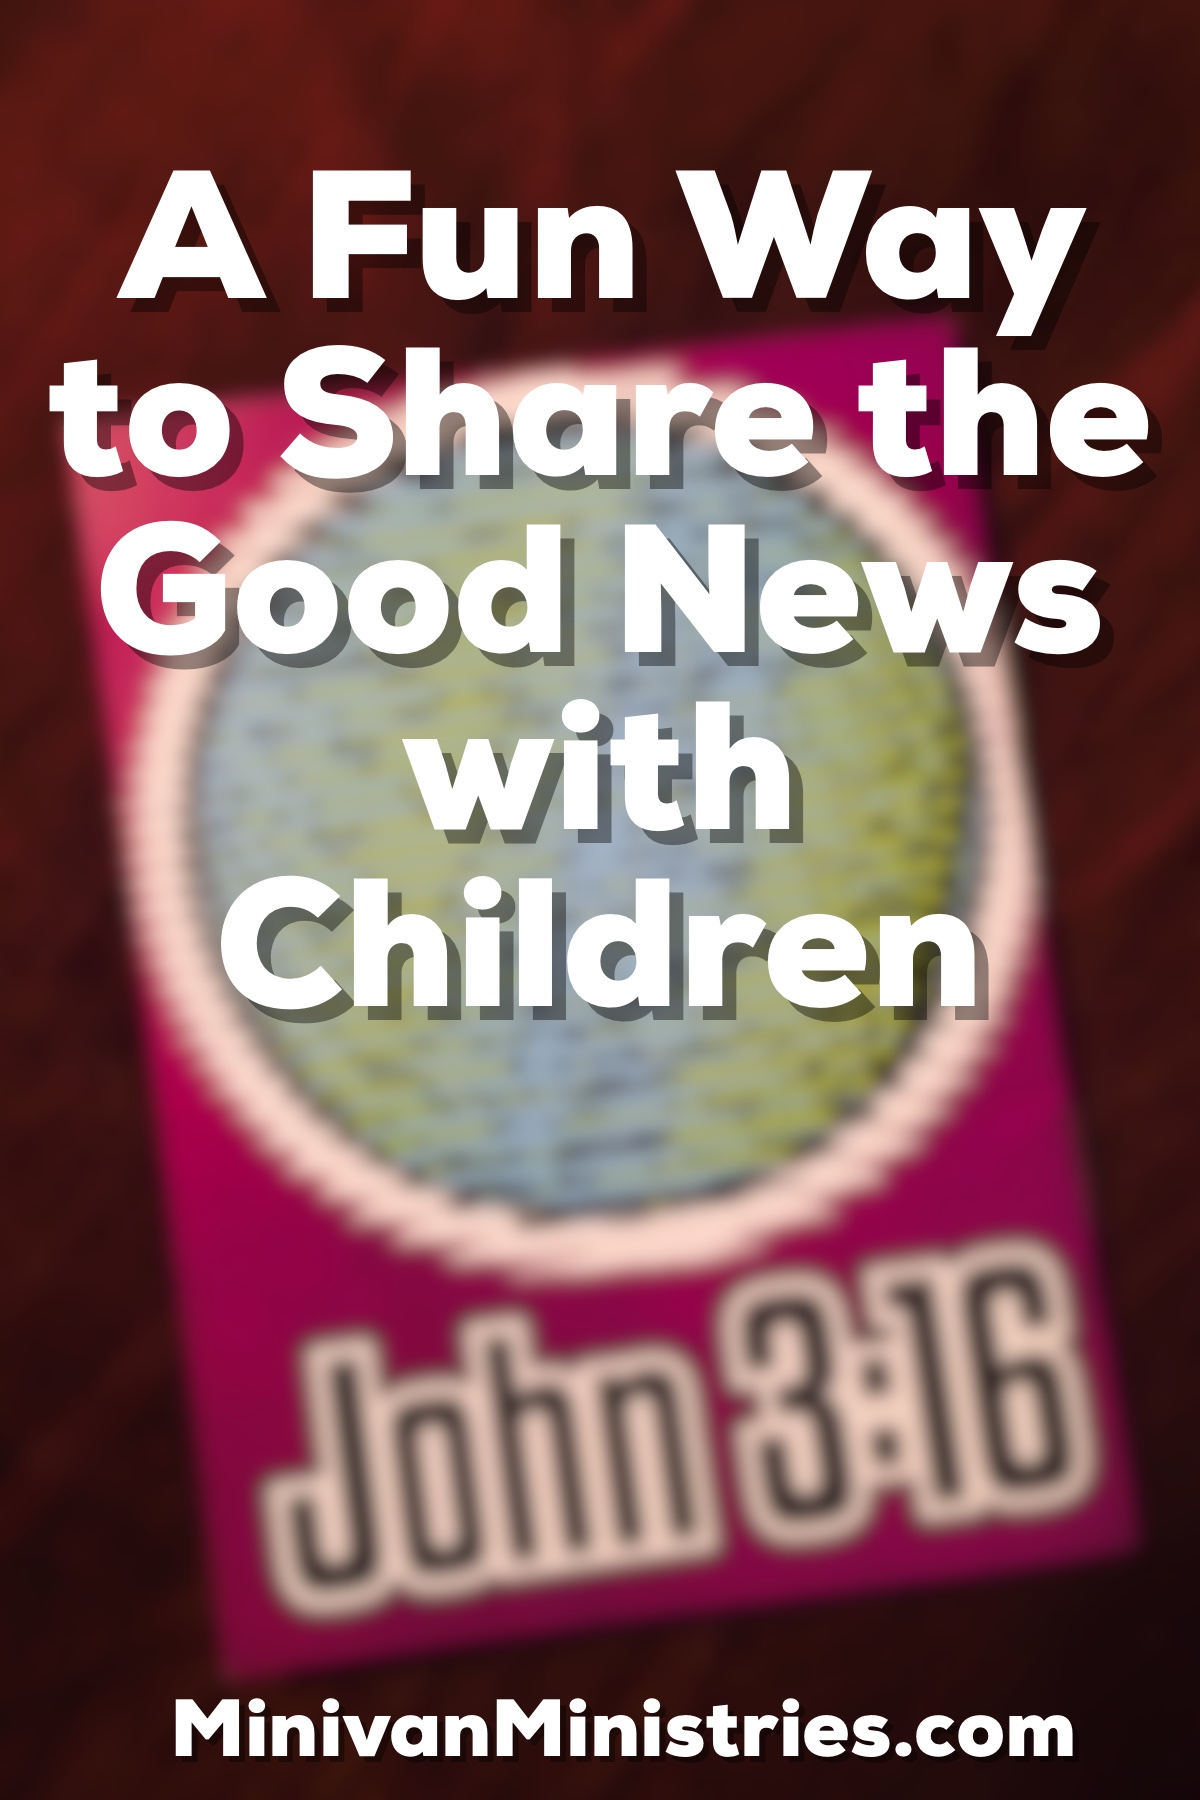 A Fun Way to Share the Good News with Children